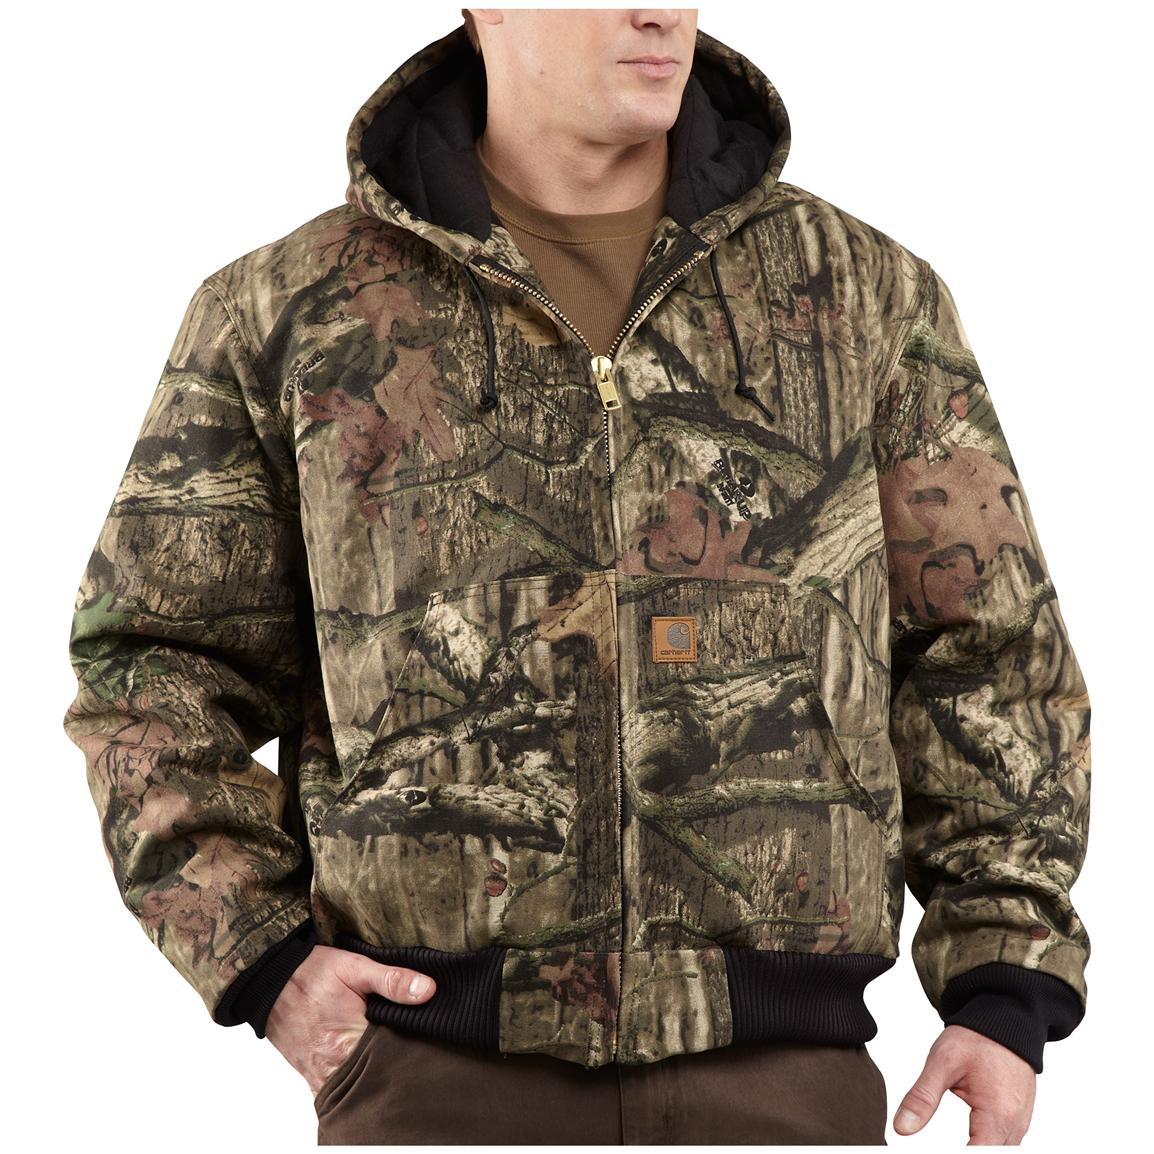 Carhartt WorkCamo Quilted Flannel-Lined Active Jacket, Mossy Oak Break-Up Infinity